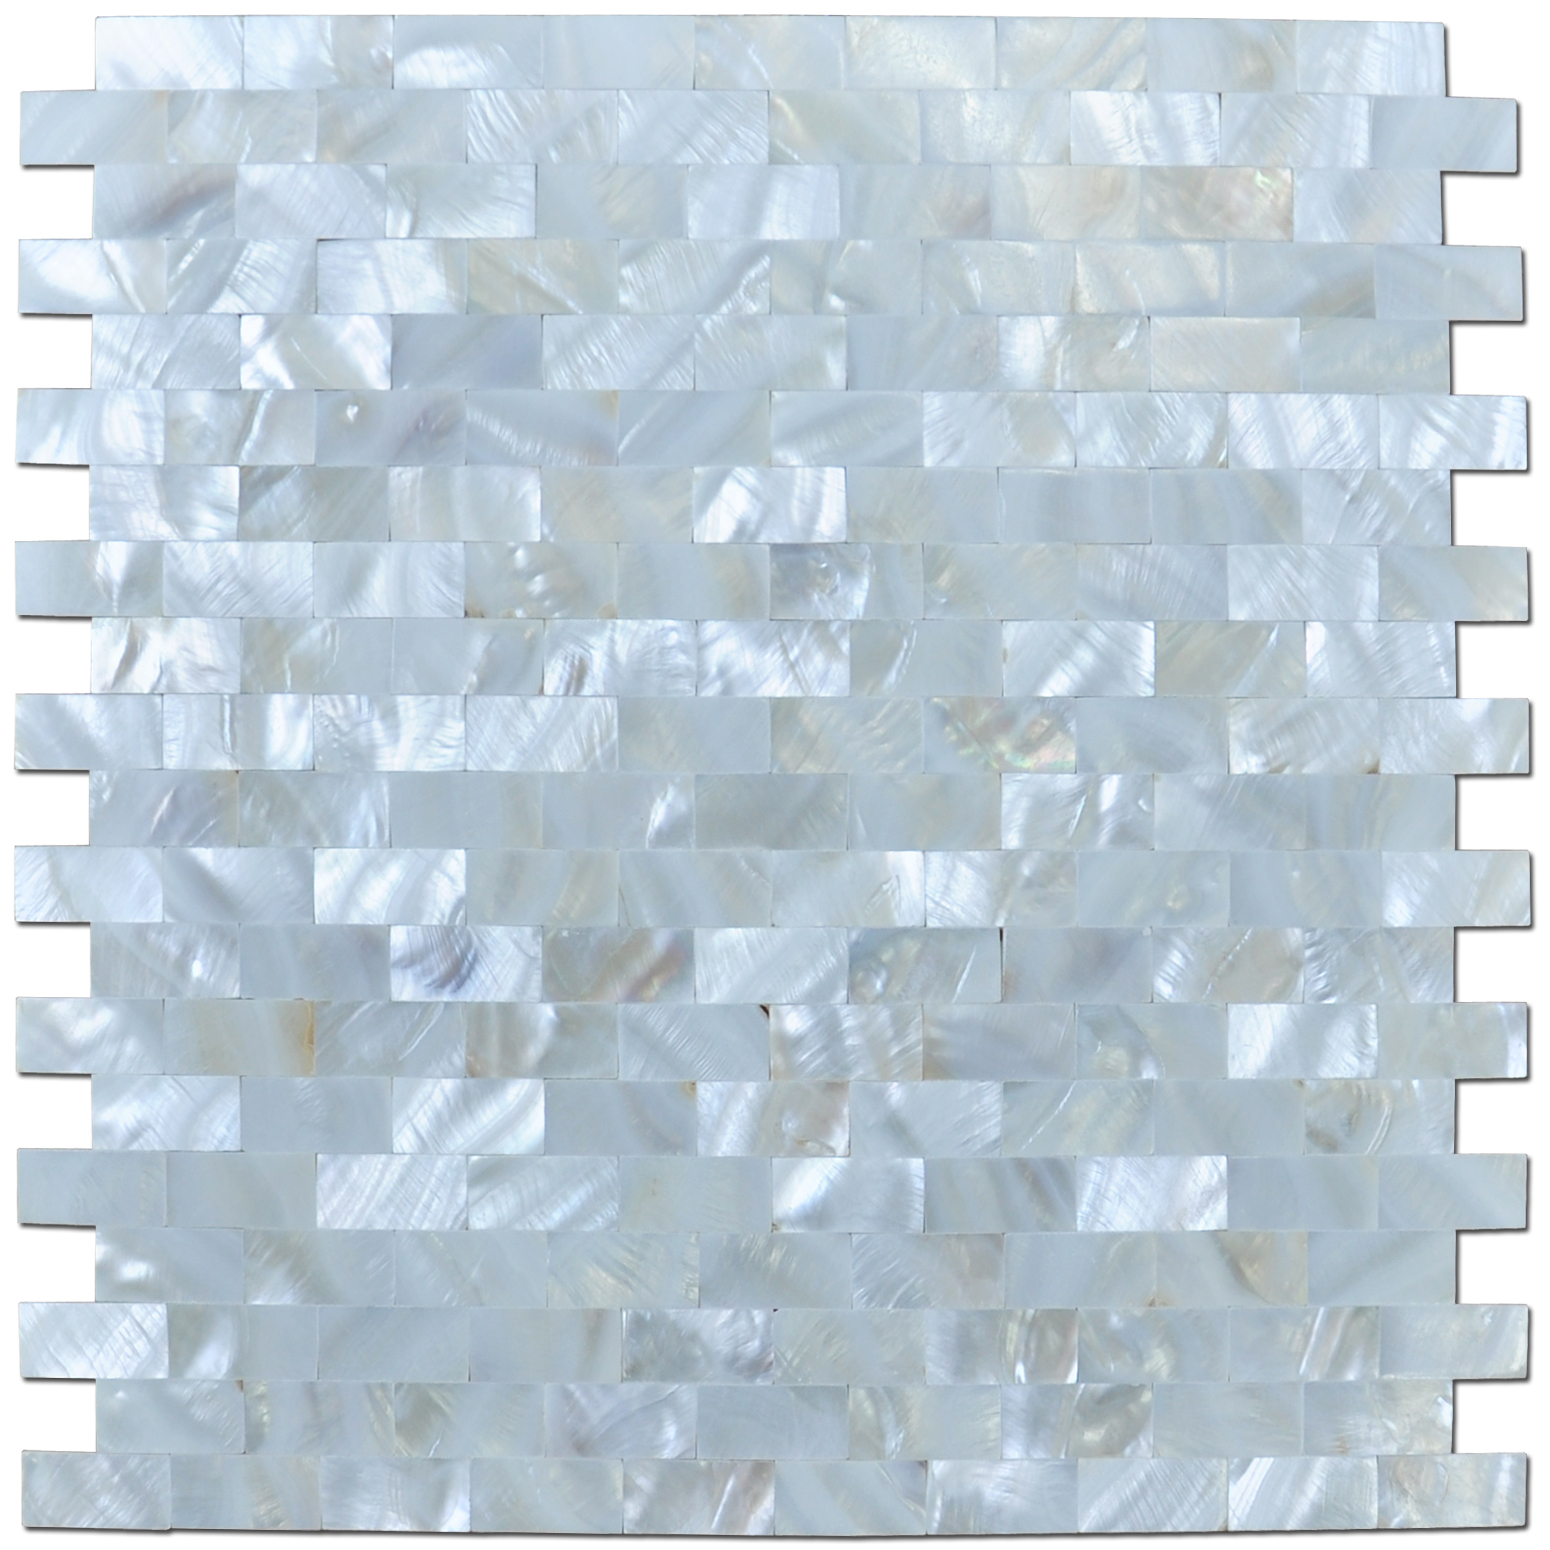 "Mother of Pearl White Shell Mosaic Tile for Kitchen Backsplashes, Bathroom Walls, Spas, Pools, 12"" x 12"" Seamless(6 Pack)"